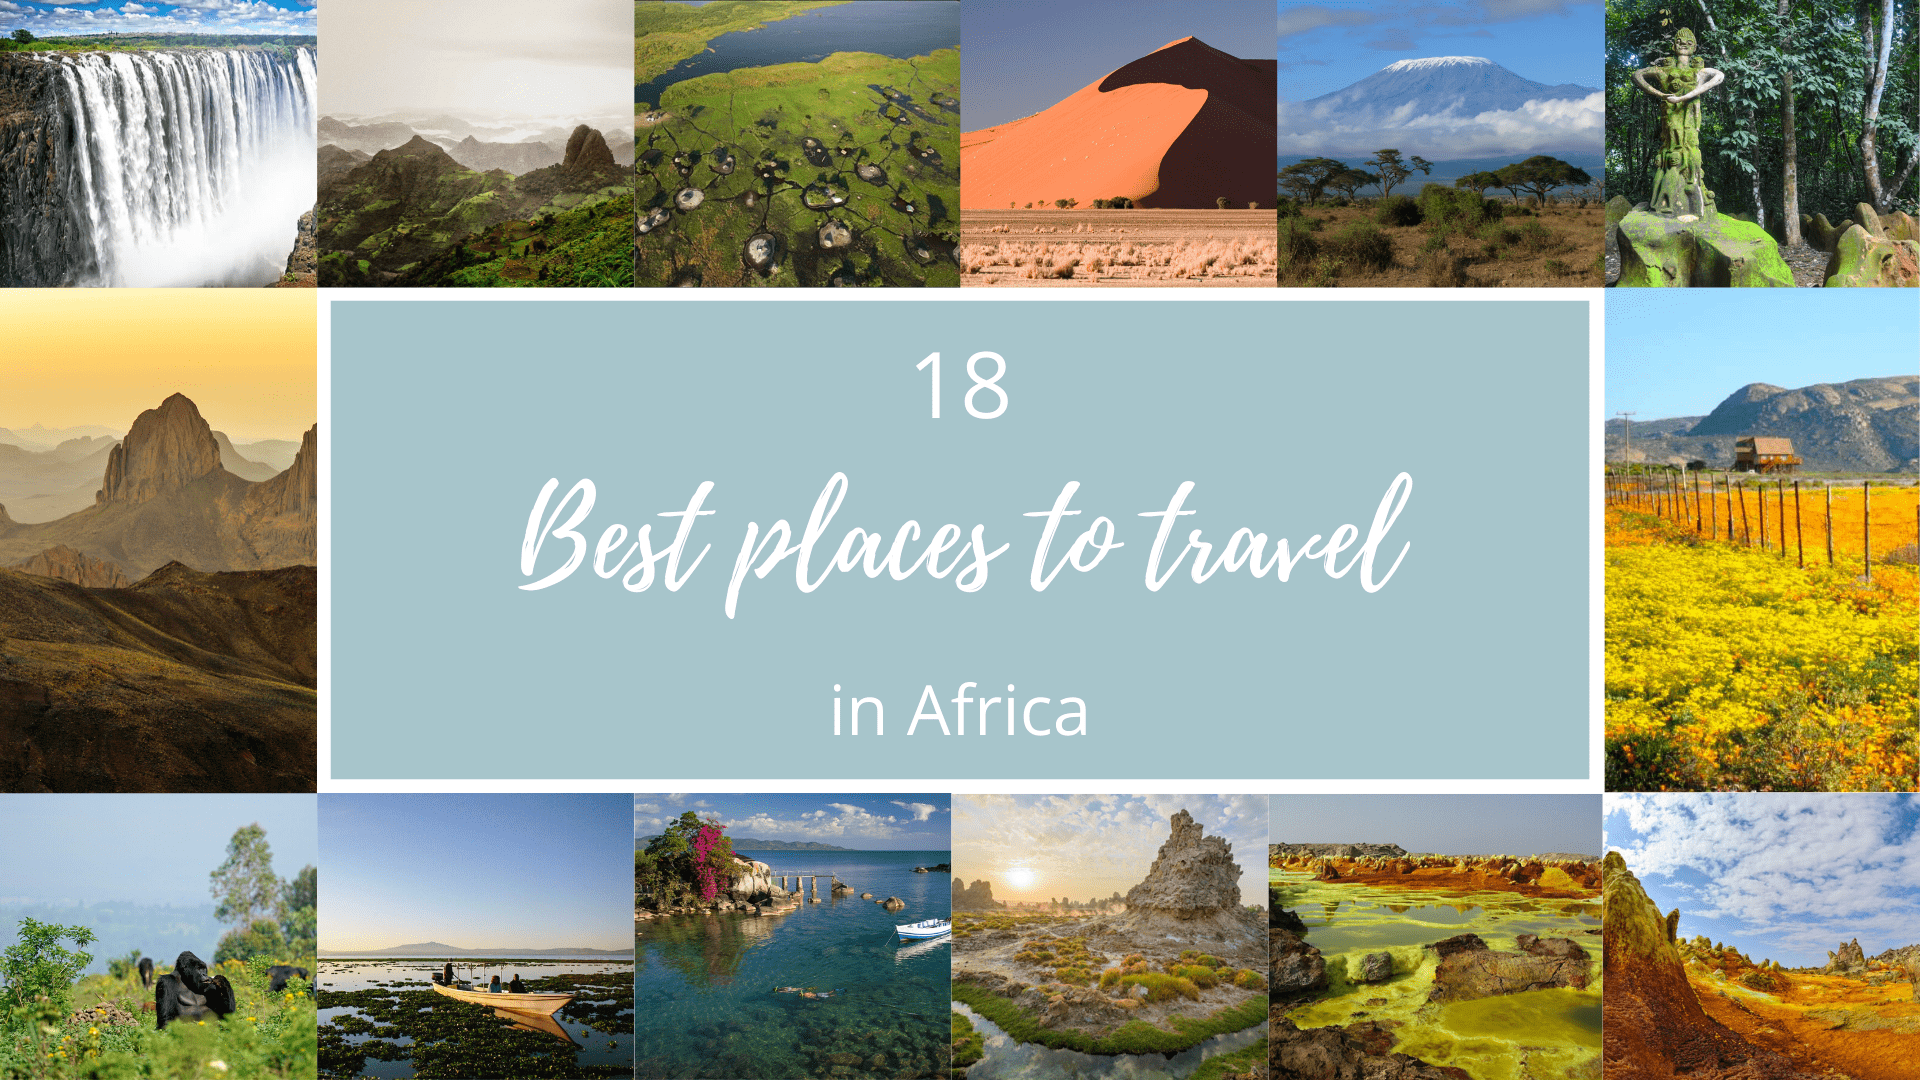 Best places to travel in Africa